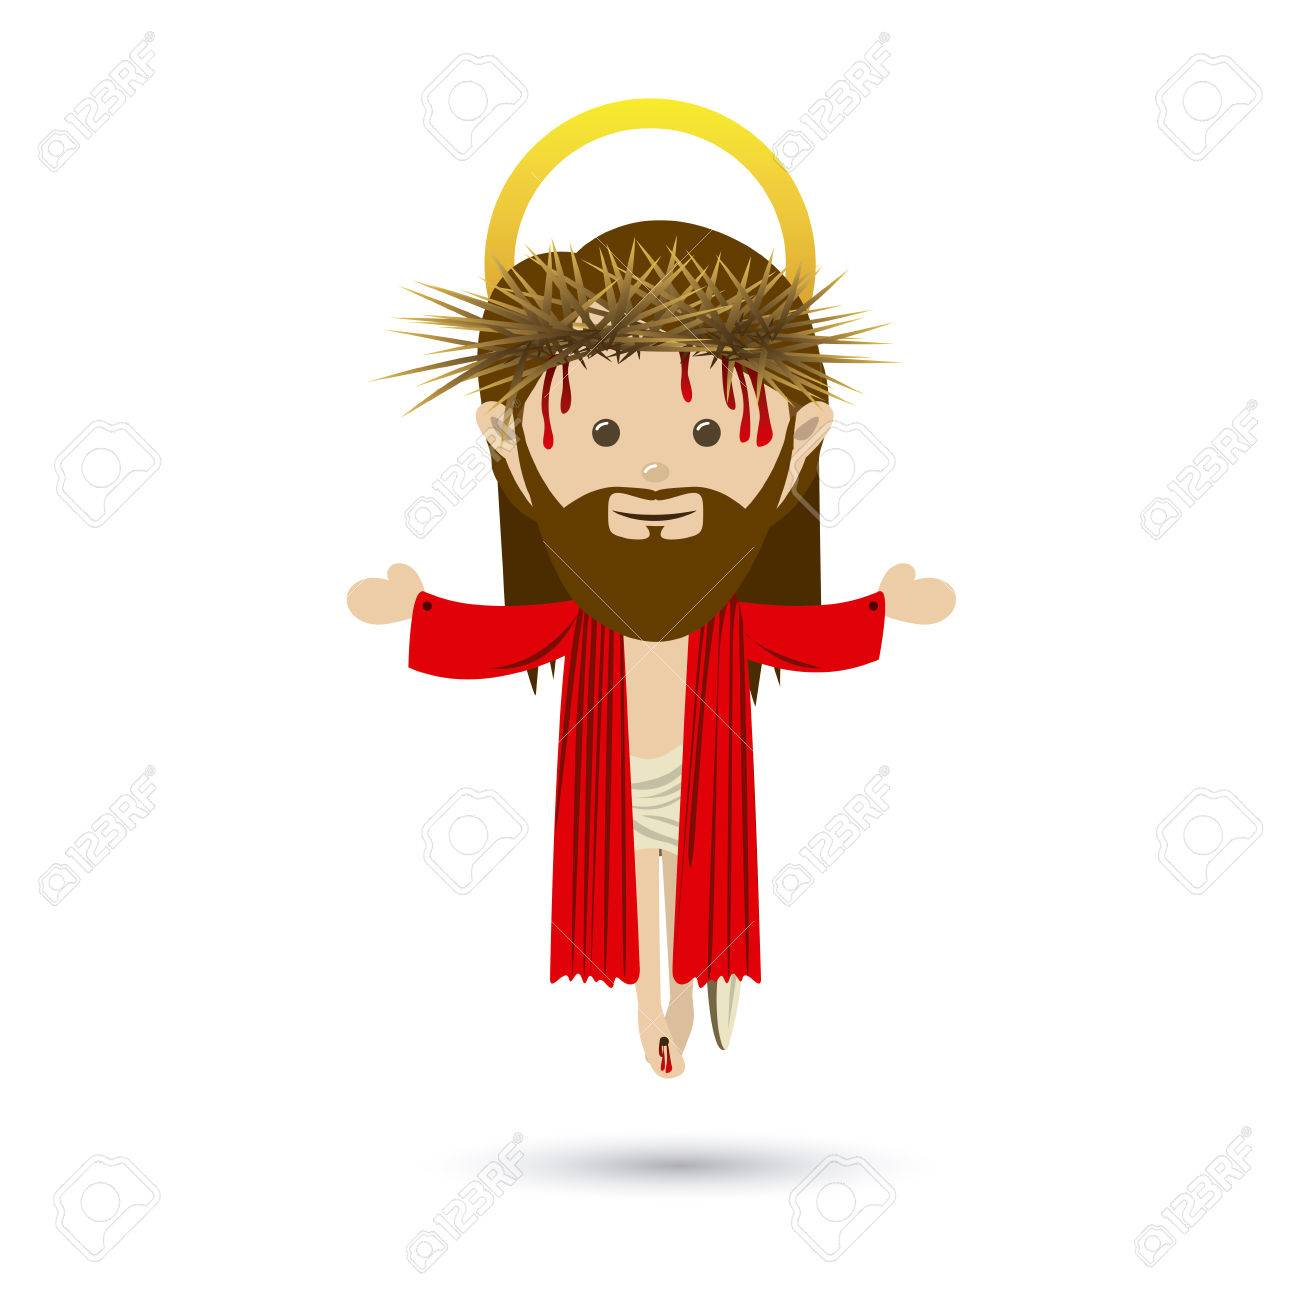 jesuschrist design over white background vector illustration Stock Vector - 22453444